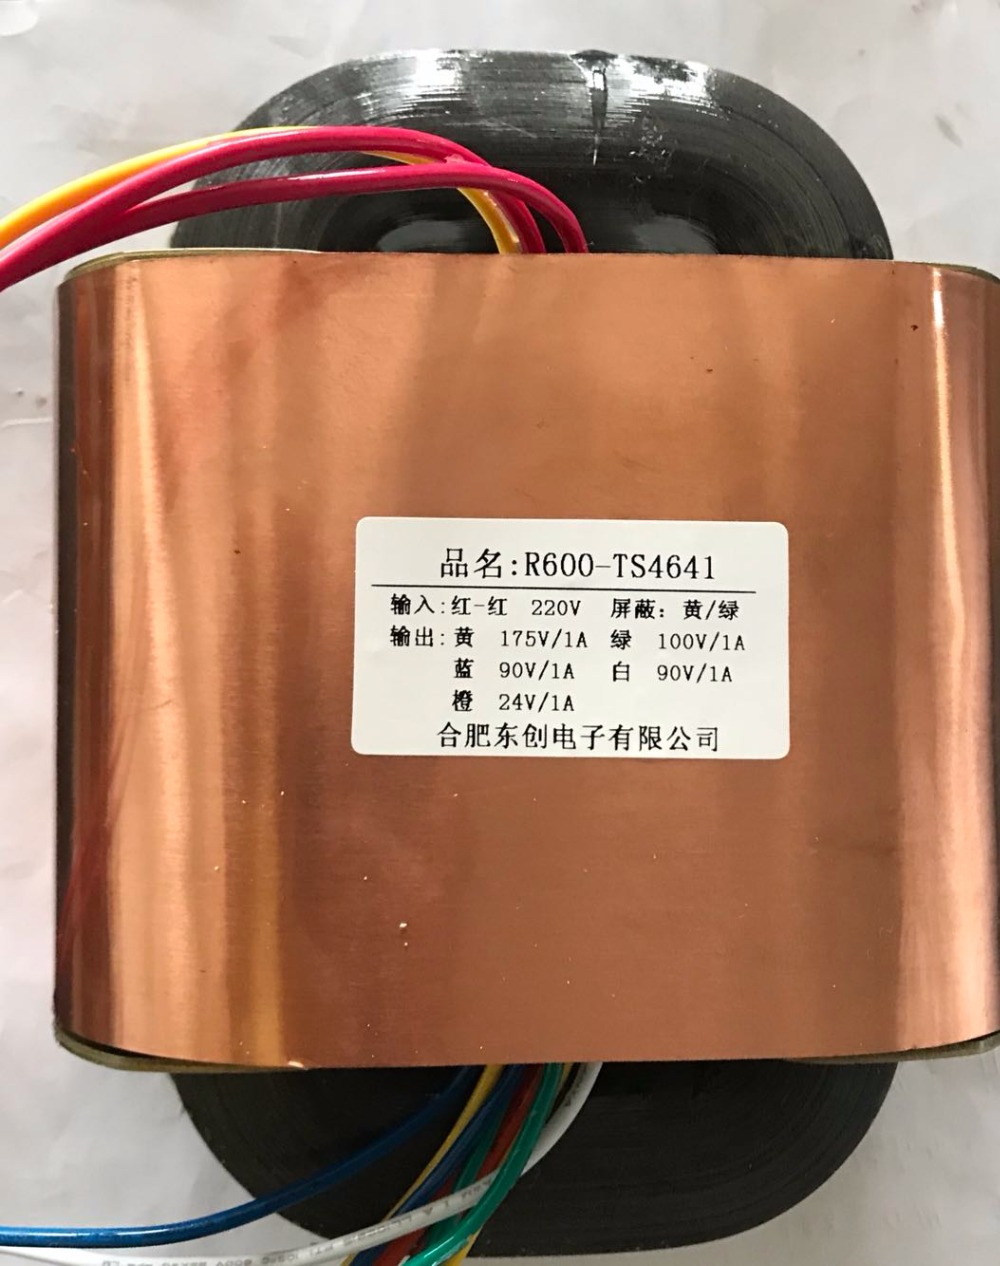 175V 1A 100V 1A 2*90V 1A 24V 1A R Core Transformer 480VA R600 custom transformer 220V copper shield Power amplifier g5nb 1a e 24vdc g5nb 1a 24vdc